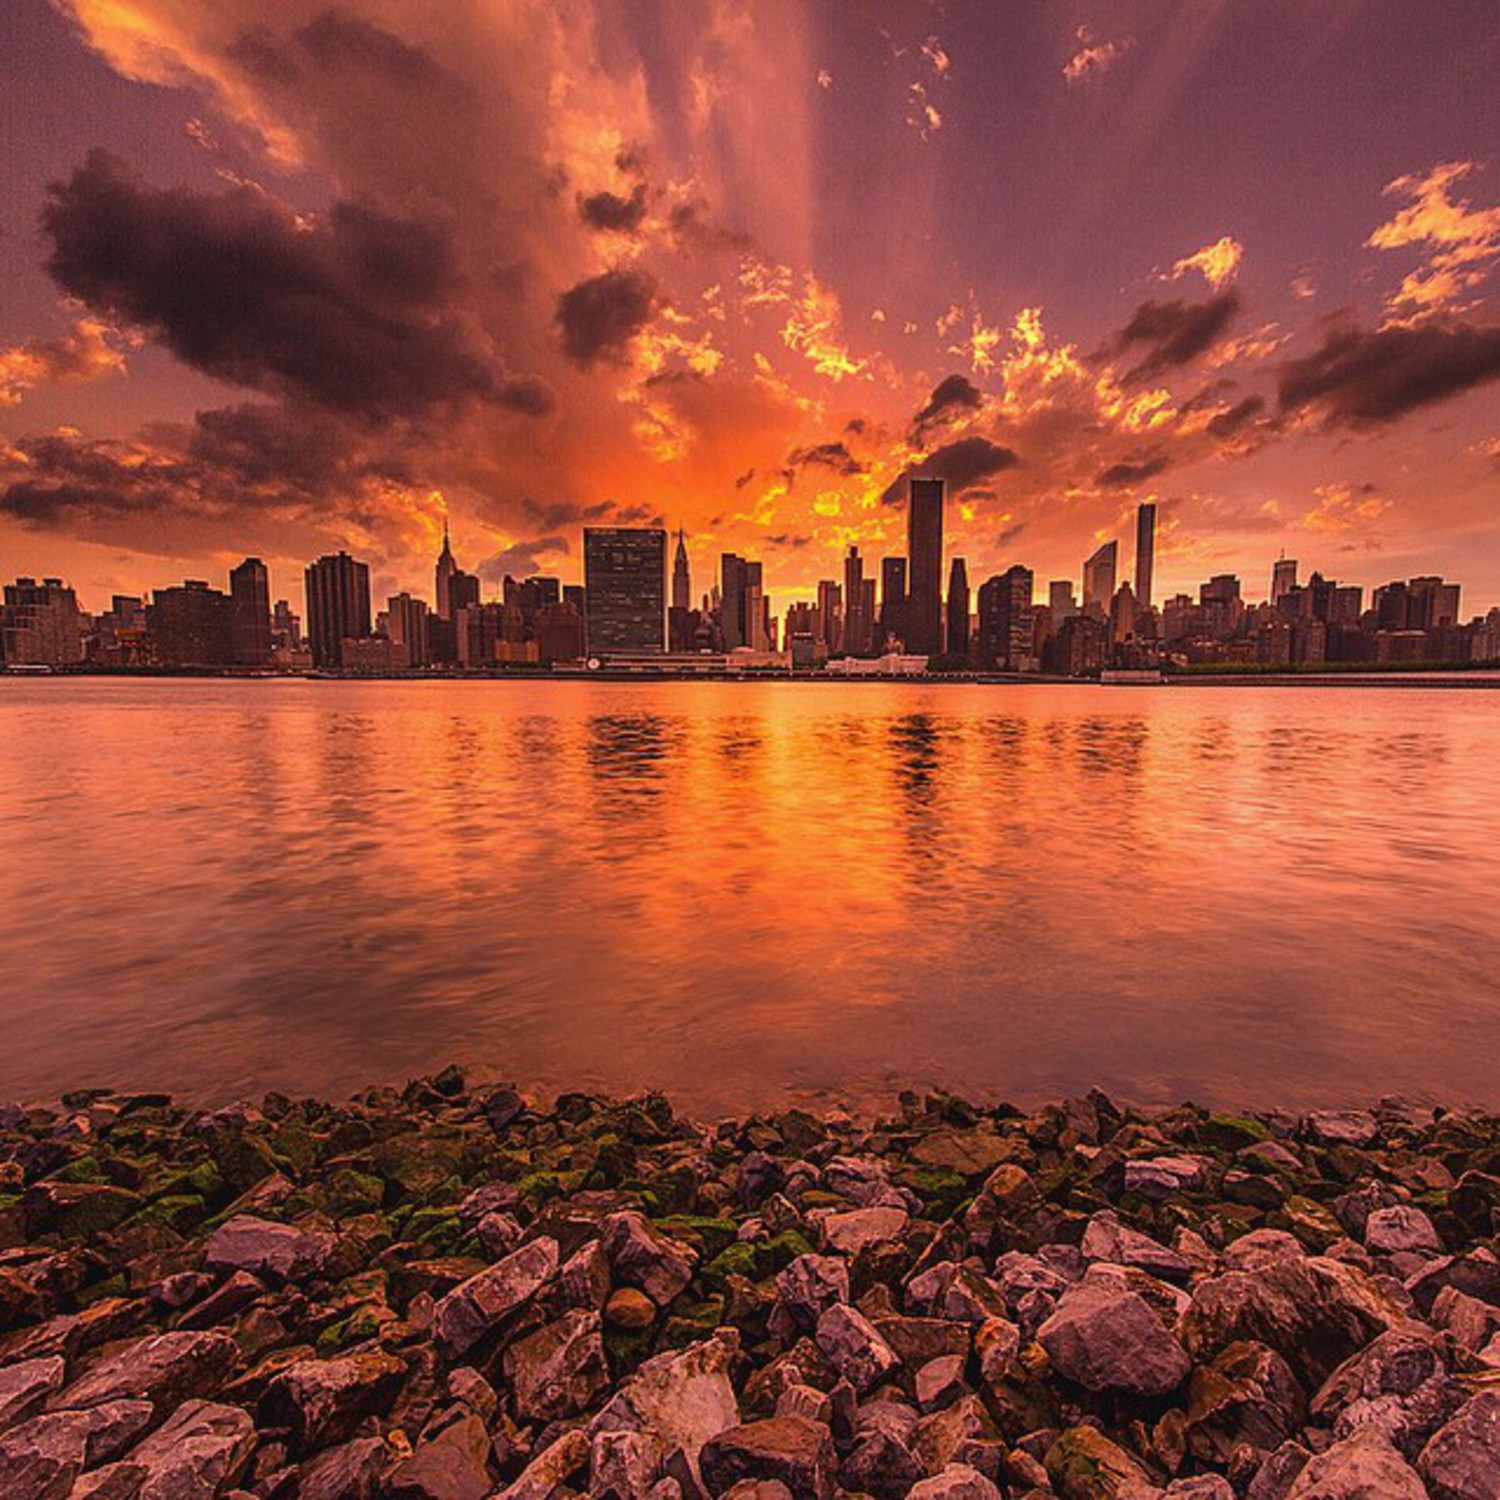 • Post Apocalypse Part 1 •  I think anyone that was in NYC last night would have seen the eruption of colour at sunset after the storm past which gave way to a phenomenal sight! This was shot in the early stages of the sunset, and my next few photos will show how it changed! Shooting with @bbsinghphotos @mjinnyc @misshattan and @arin.nyc last night 😊💙